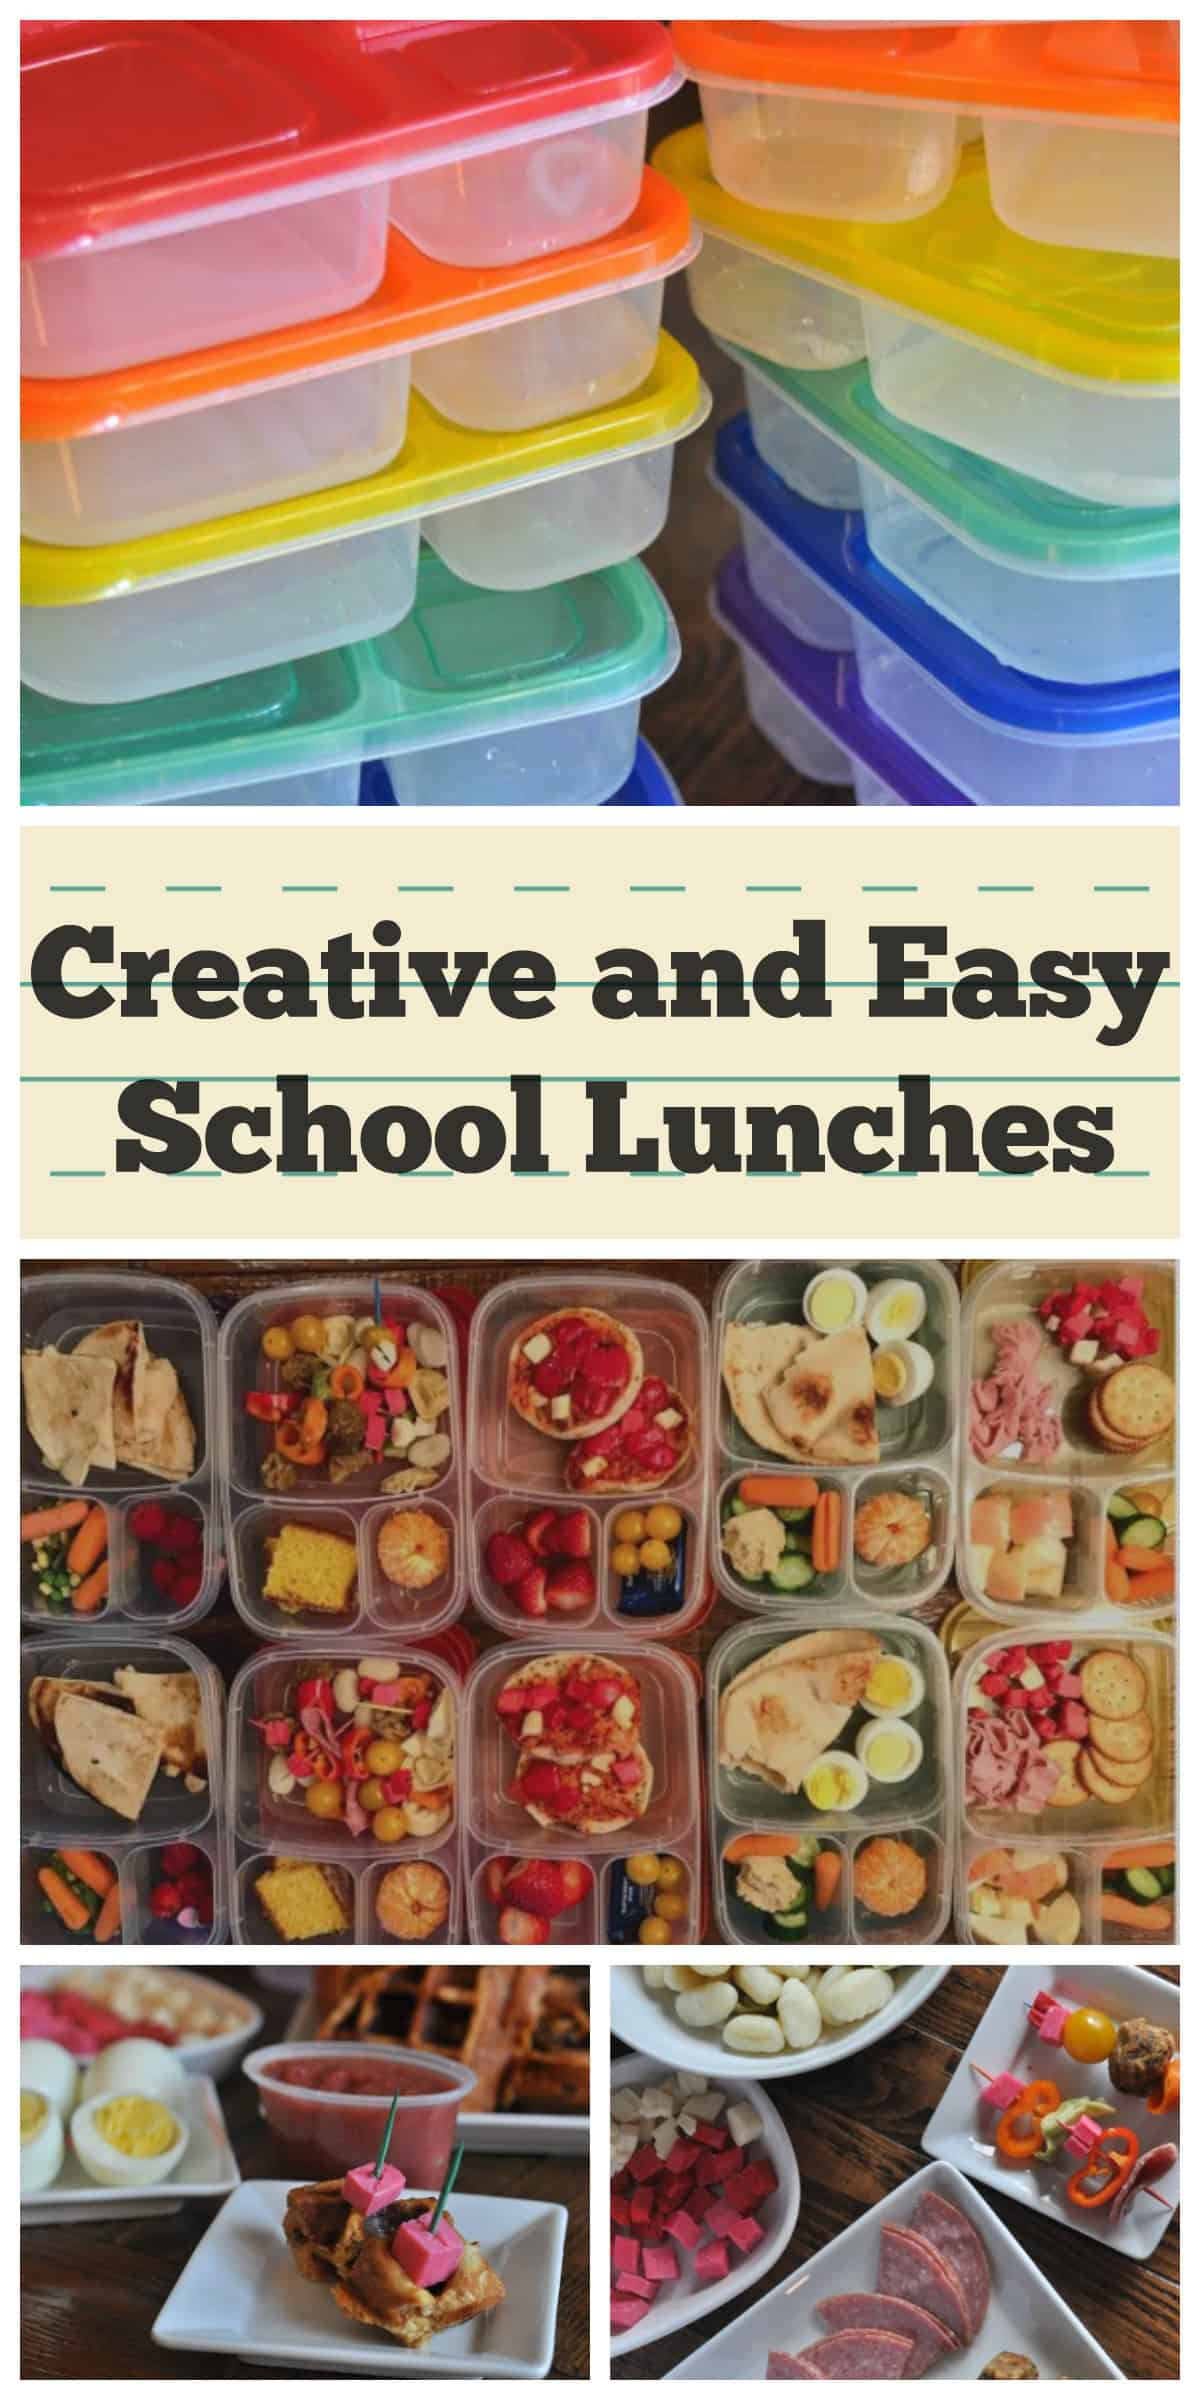 5 Simple Tips for Making School Lunches Creative and Easy